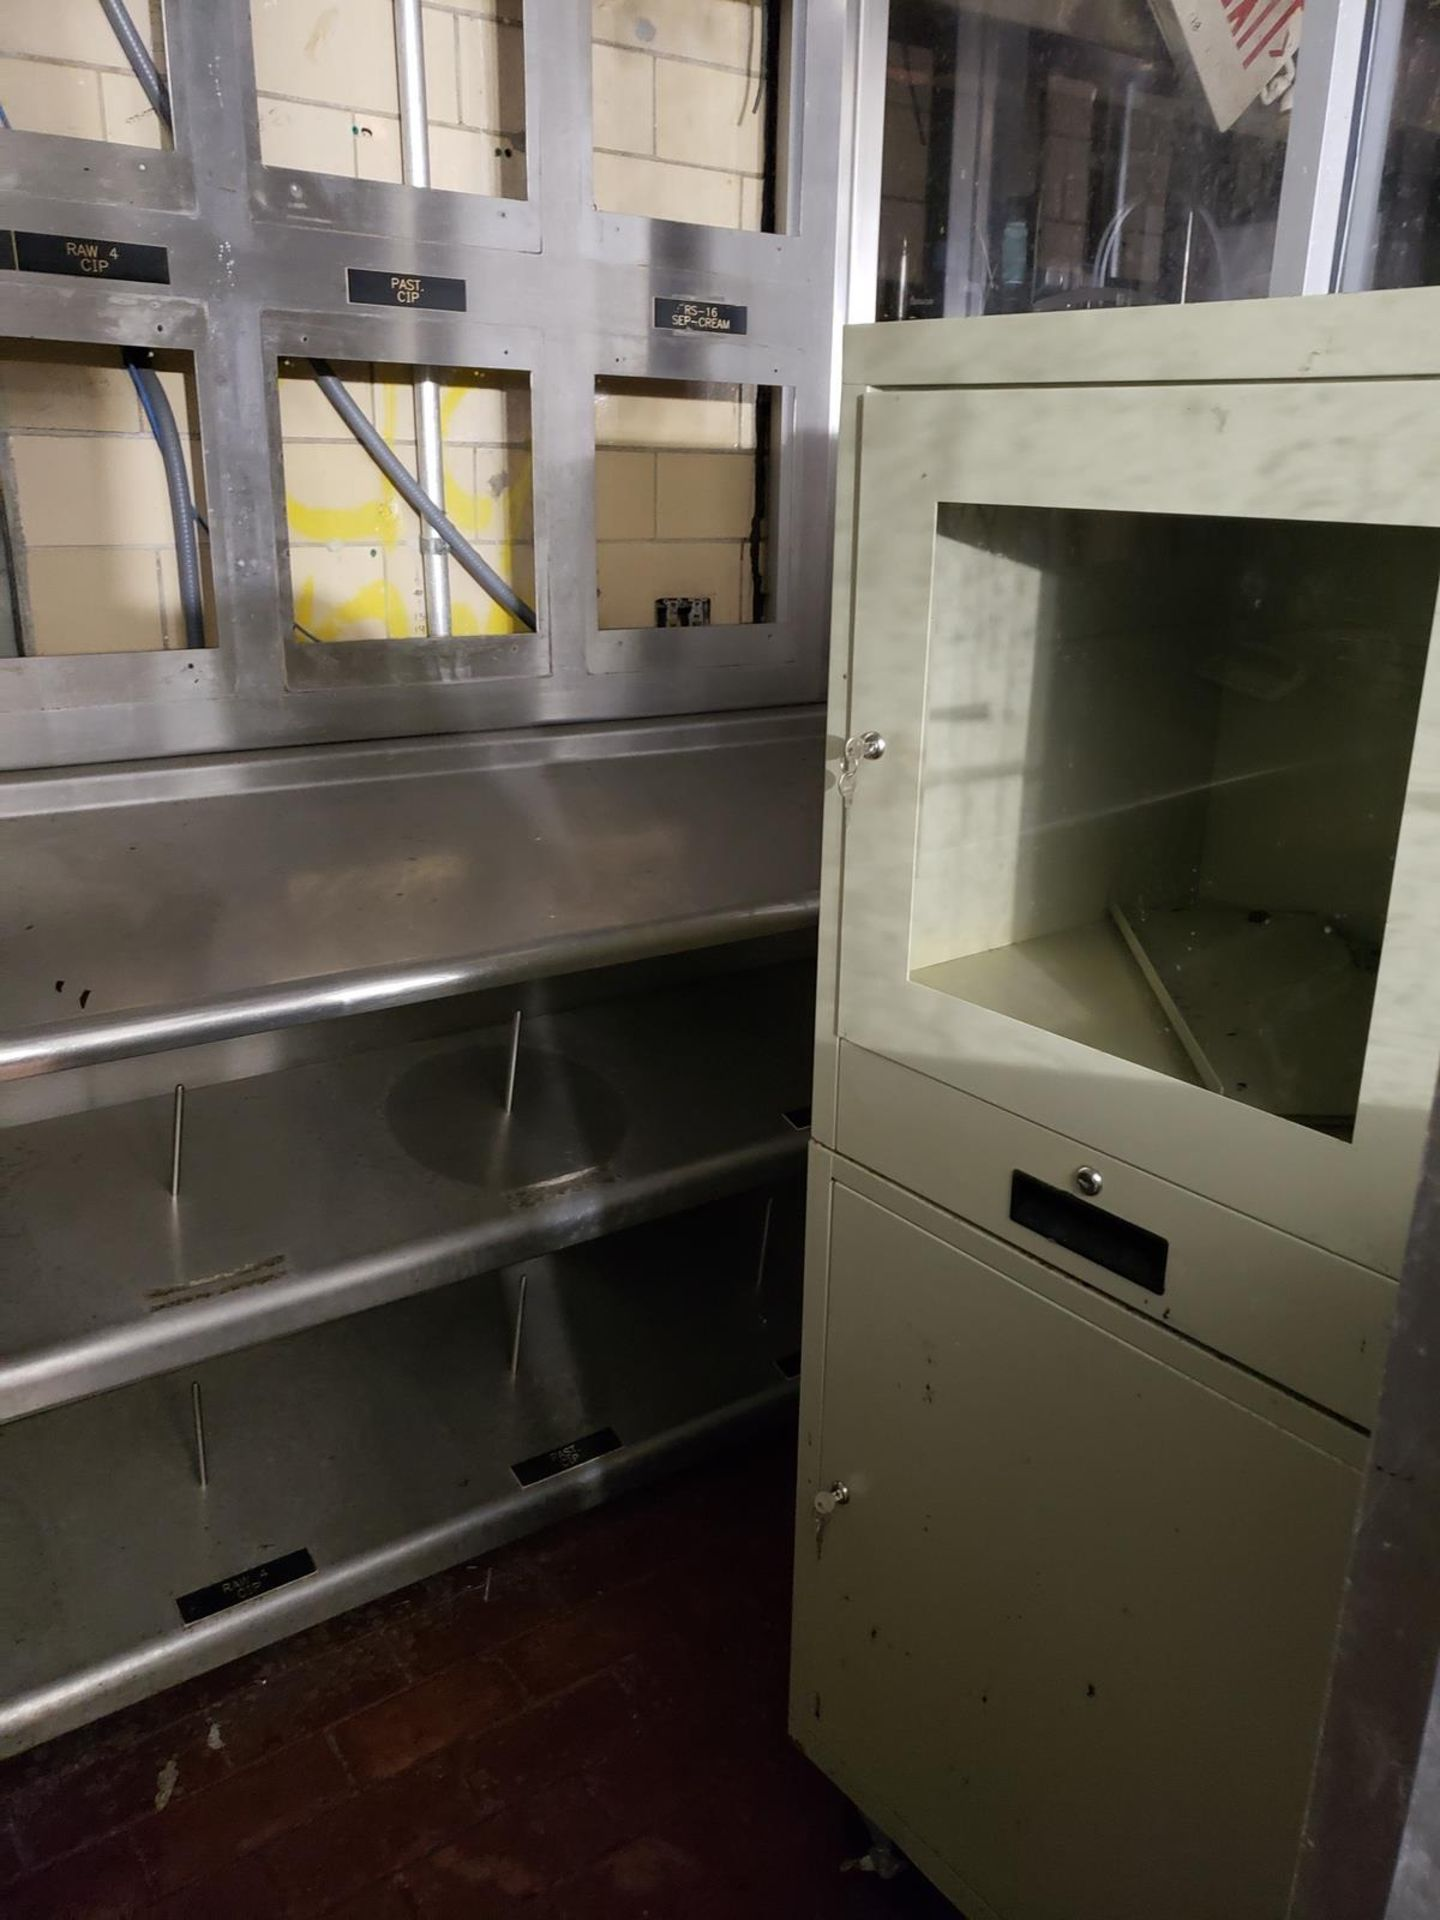 Garelick Control Shed | Rig Fee: $1800 - Image 3 of 3